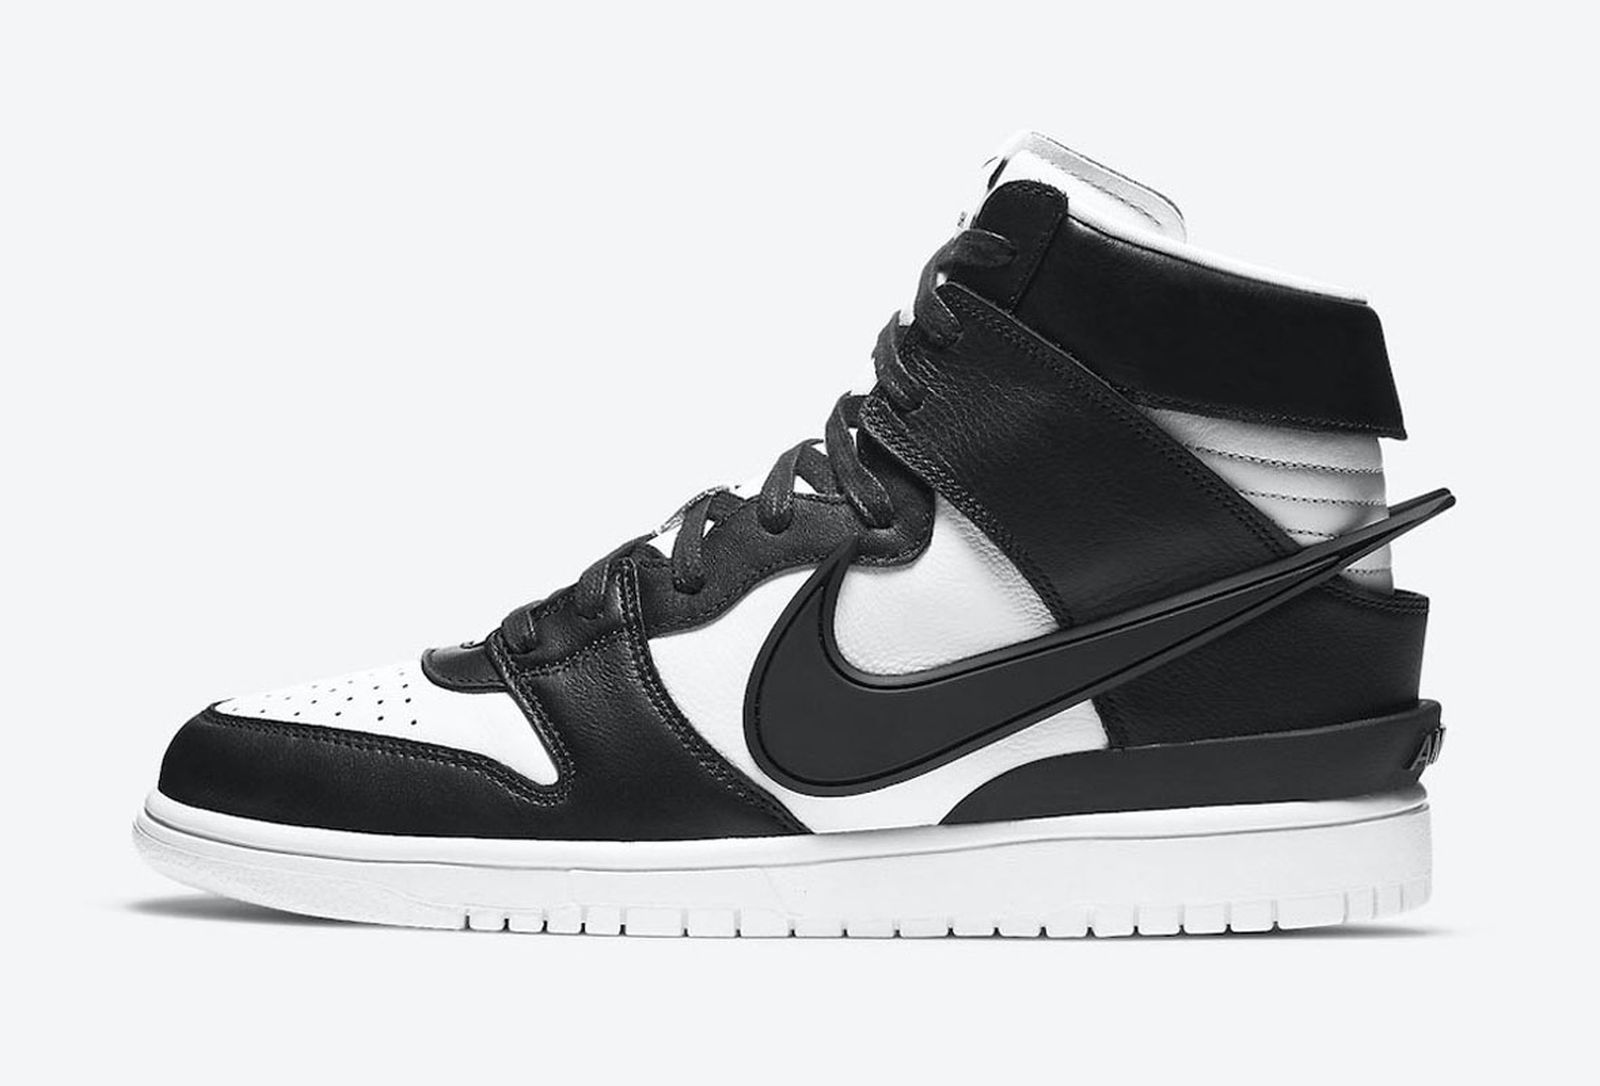 ambush-nike-dunk-high-black-white-release-date-price-01